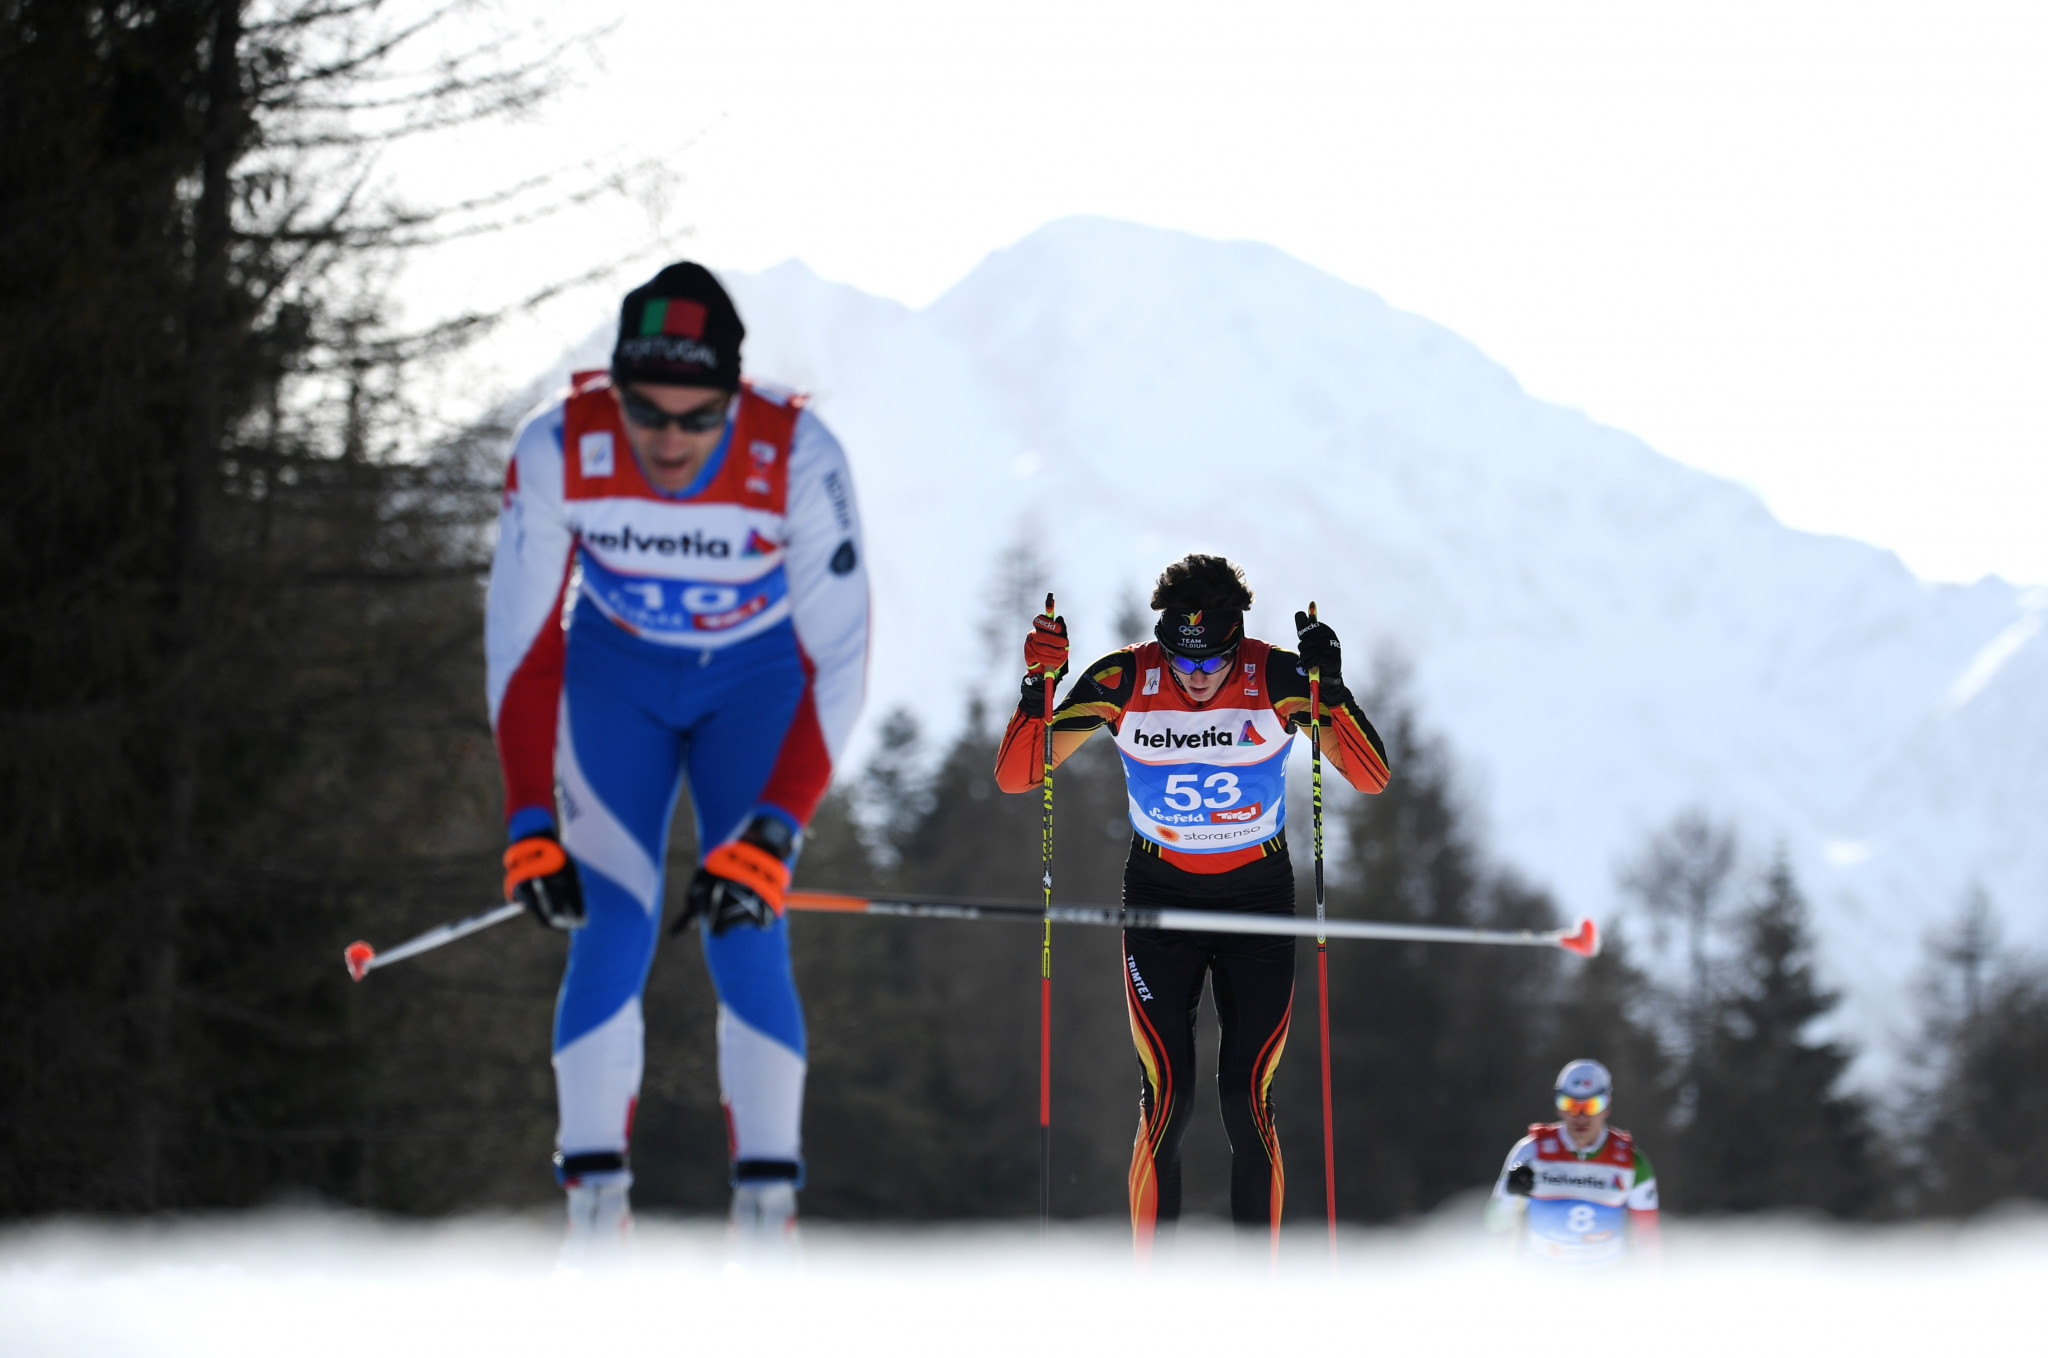 FIS Nordic Ski World Championships begins with cross-country qualifying and Opening Ceremony